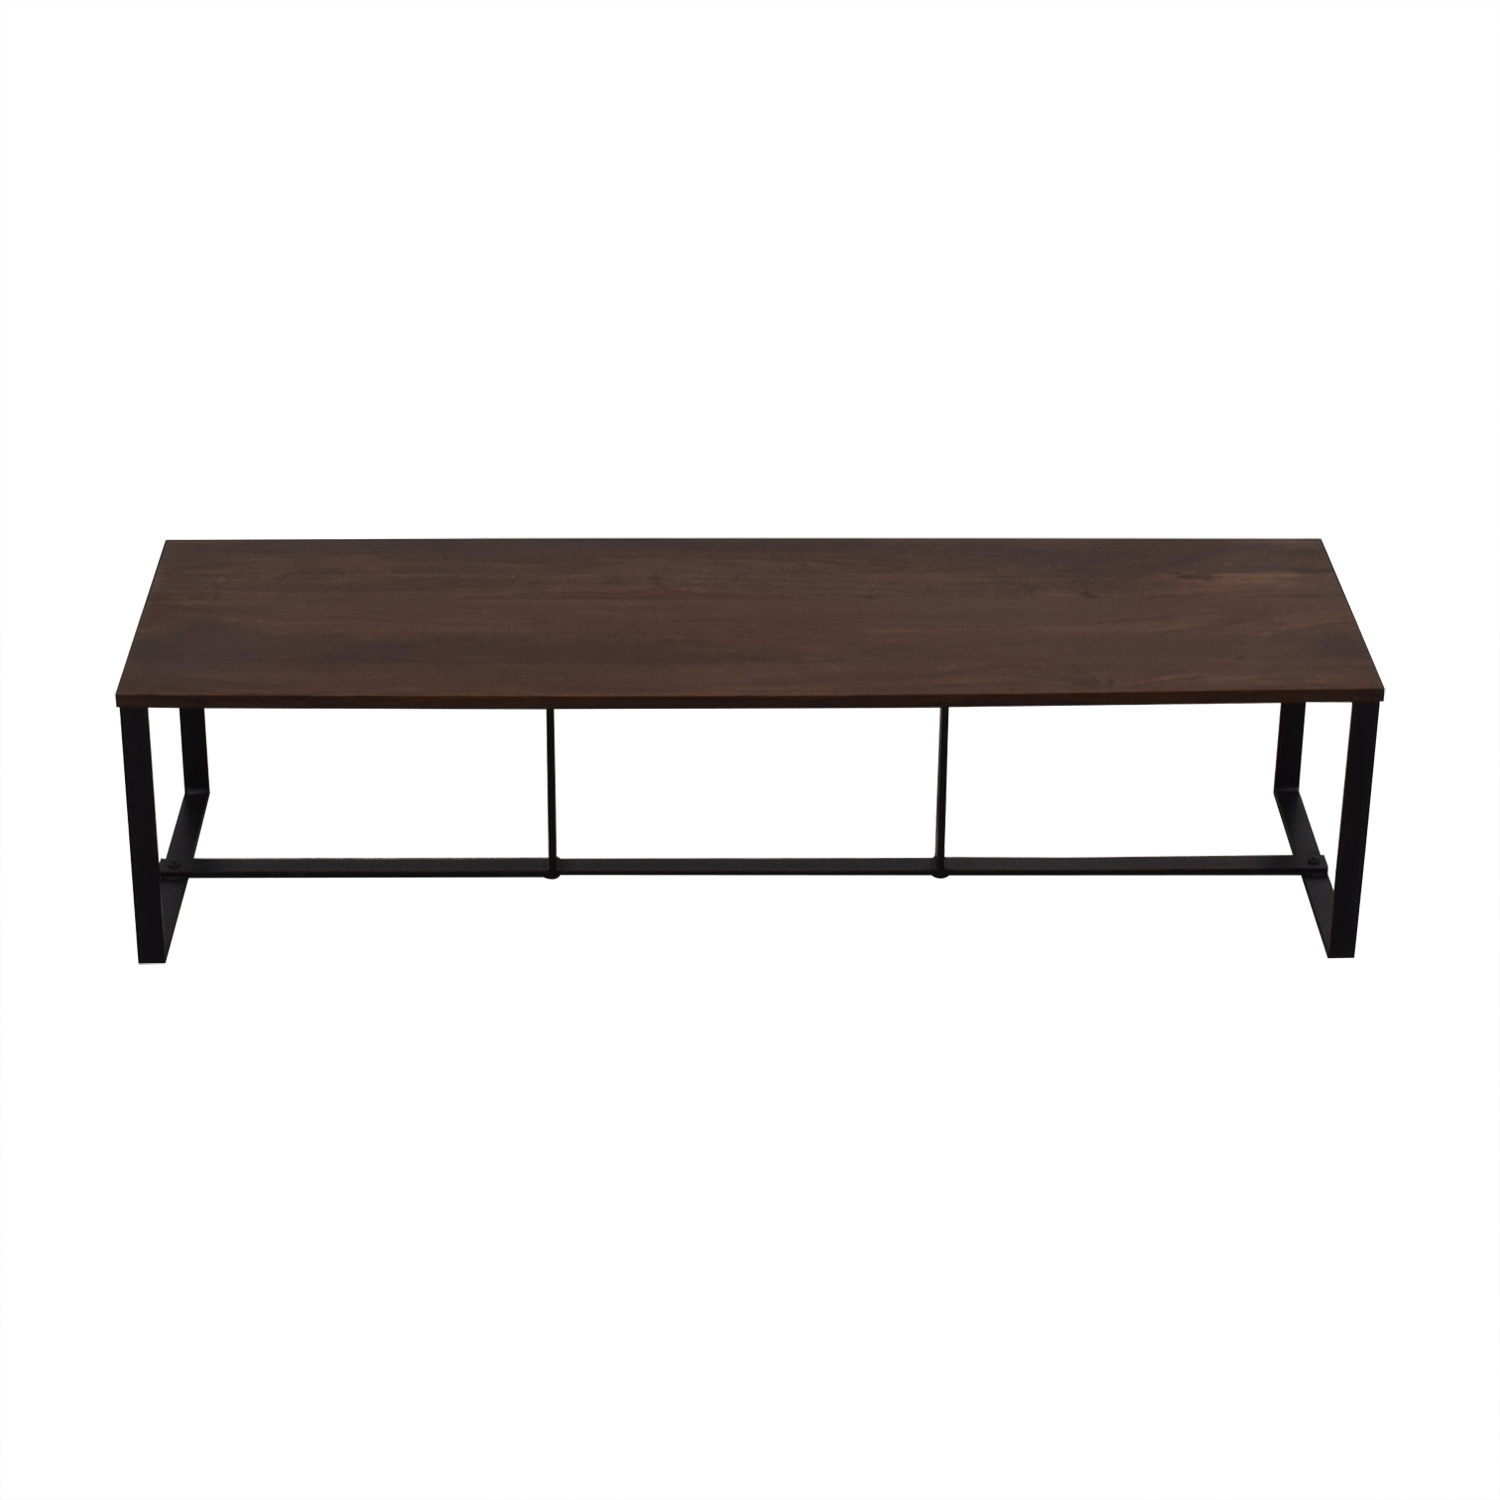 Furniture Masters Furniture Masters Industrial Coffee Table on sale